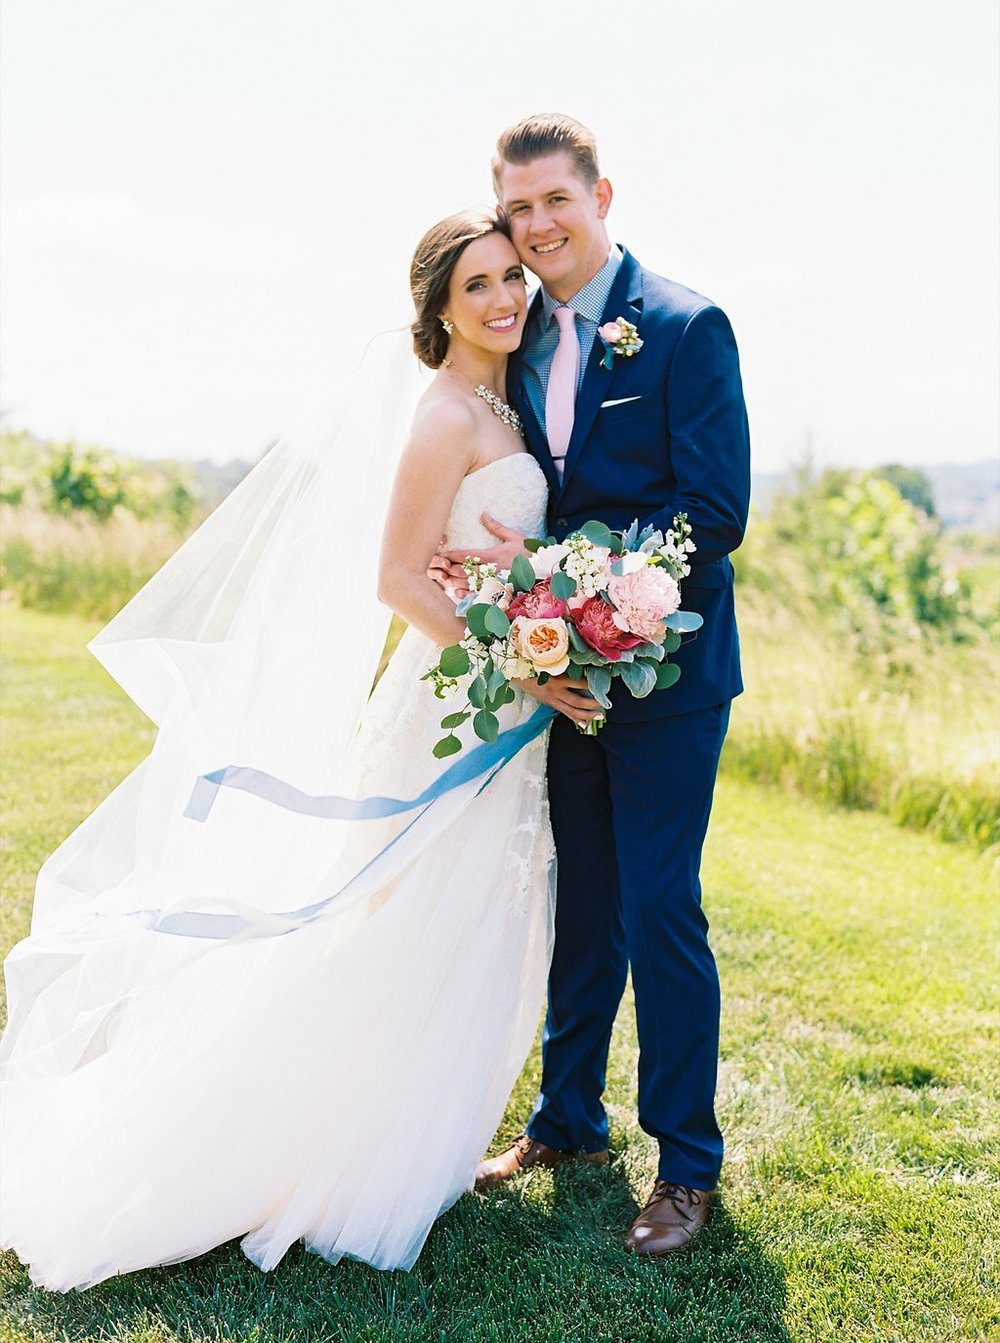 Sweet first look photos at Gettysvue Country Club in Knoxville | Simply Jessica Marie's Southern Wedding | Photo by Perry Vaile Photography